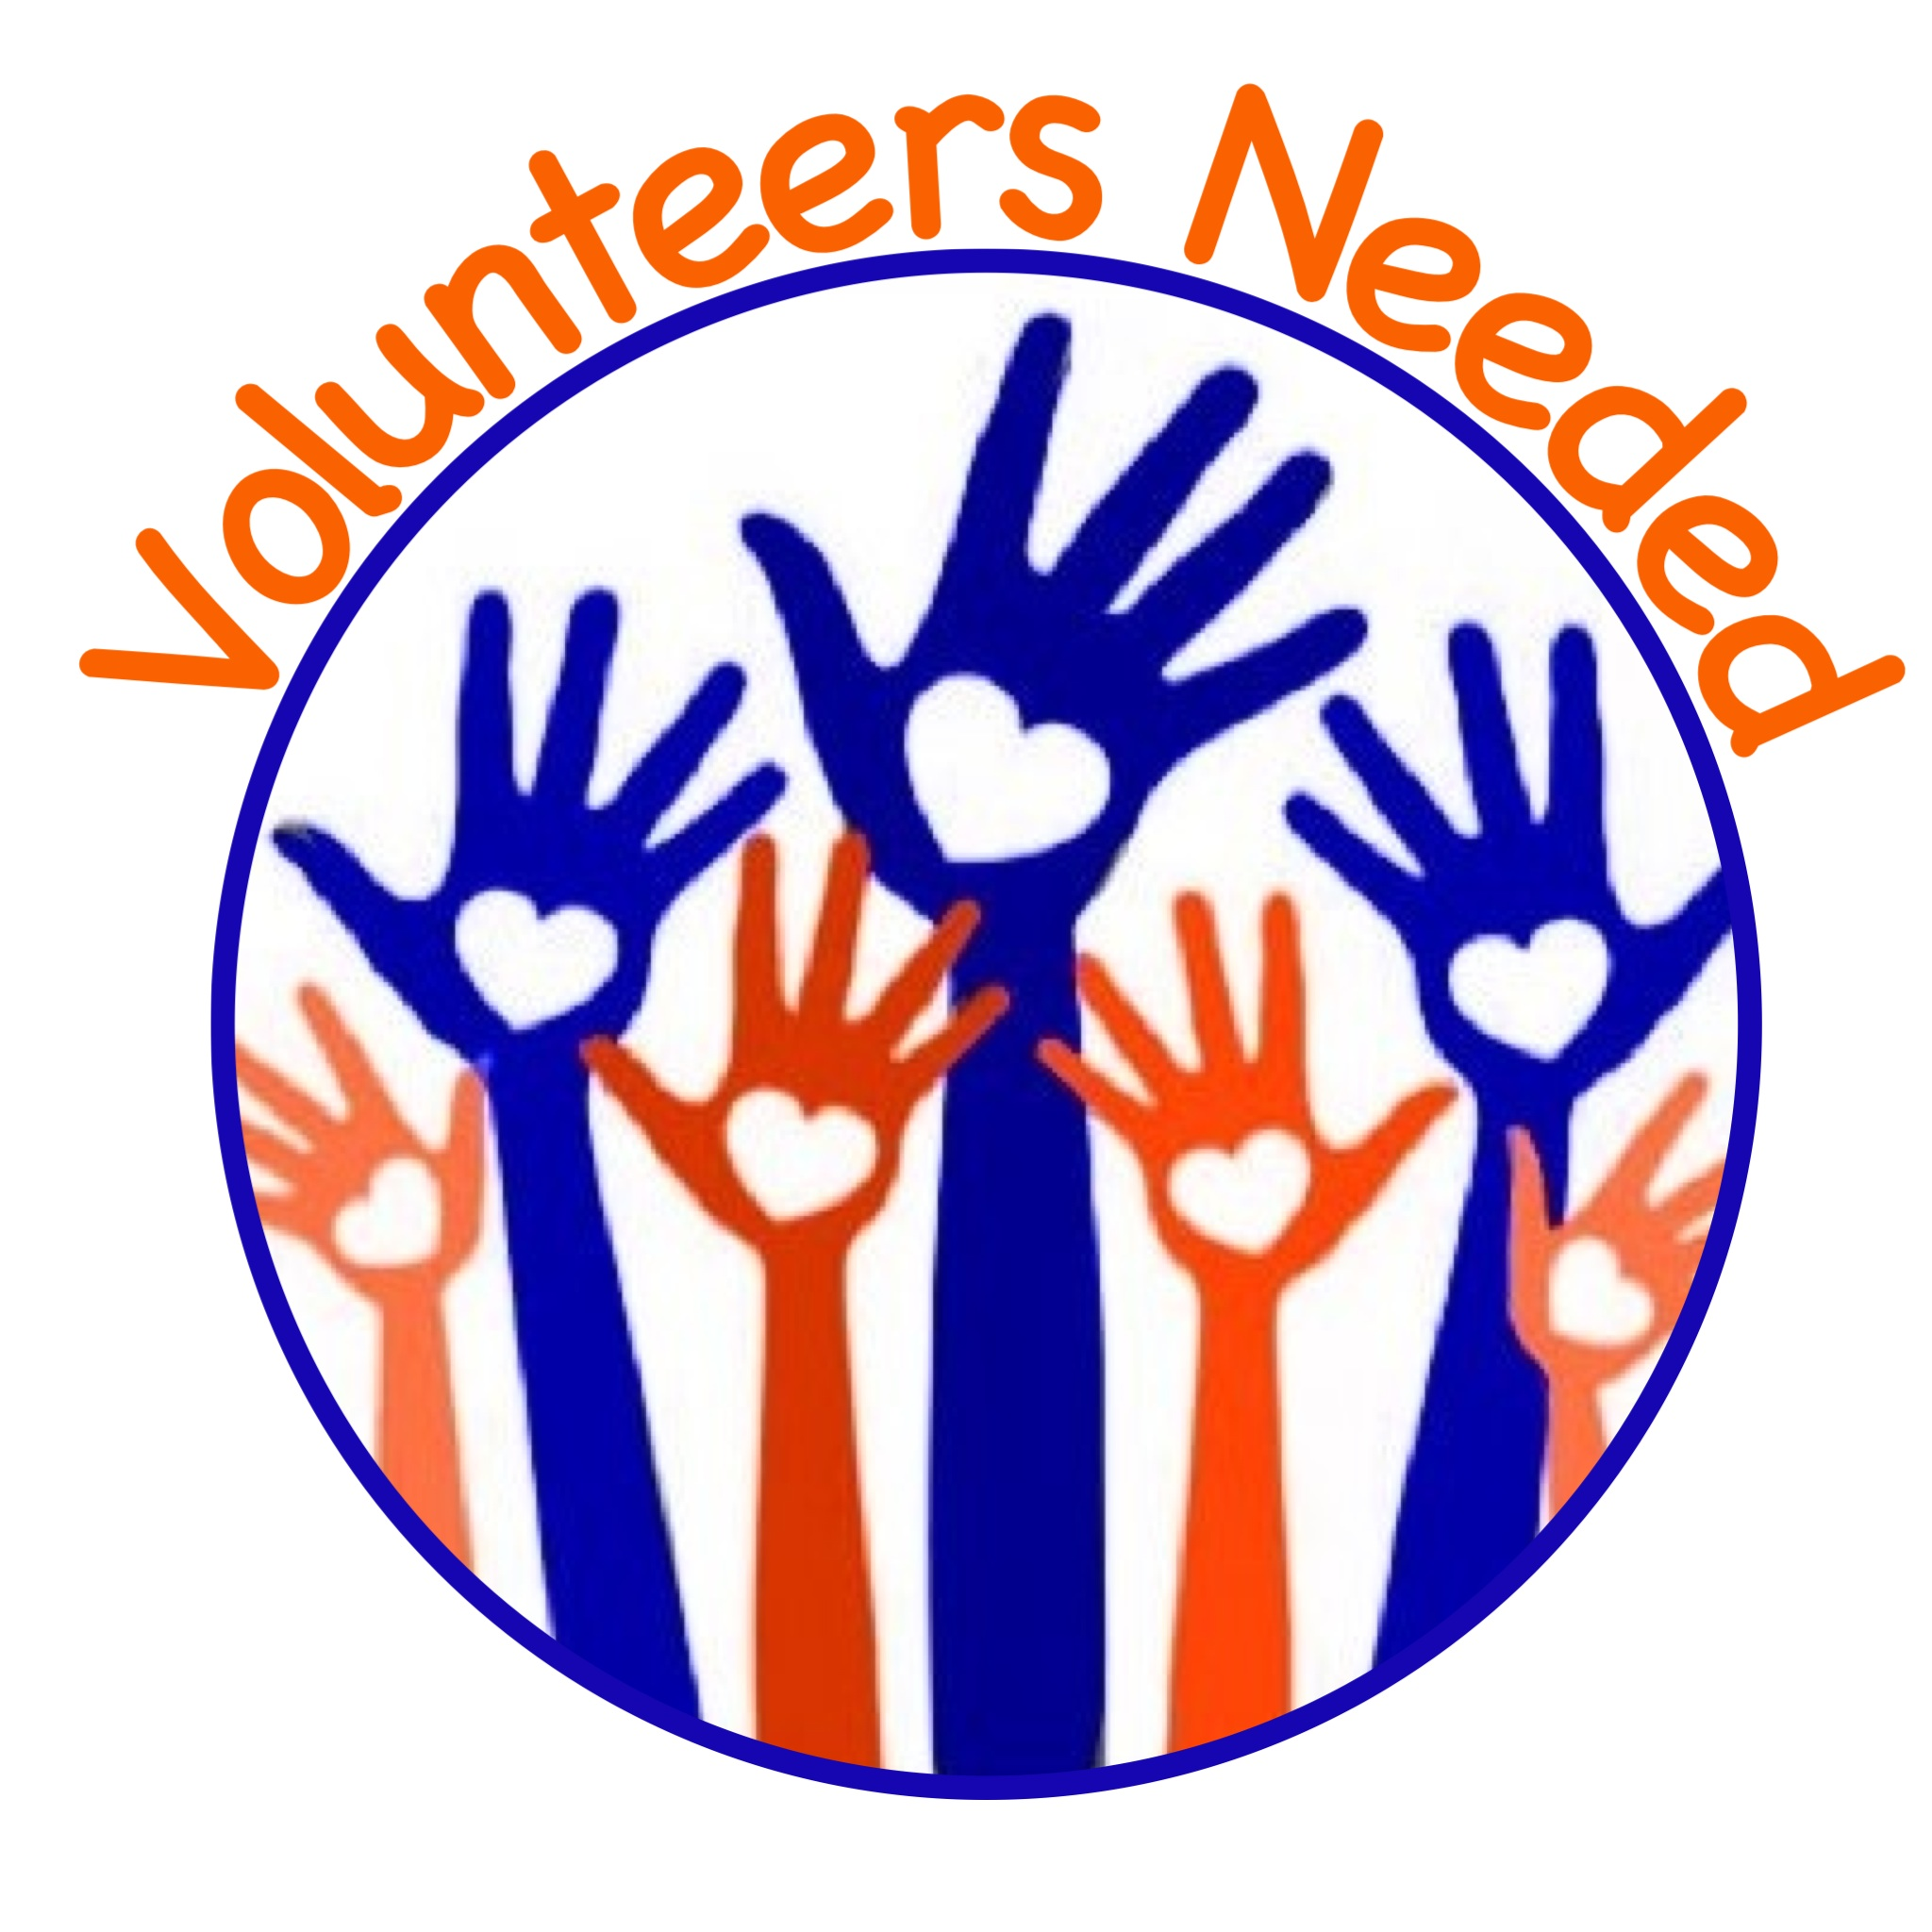 2048x2048 Clip Art Food Pantry Volunteers Clipart